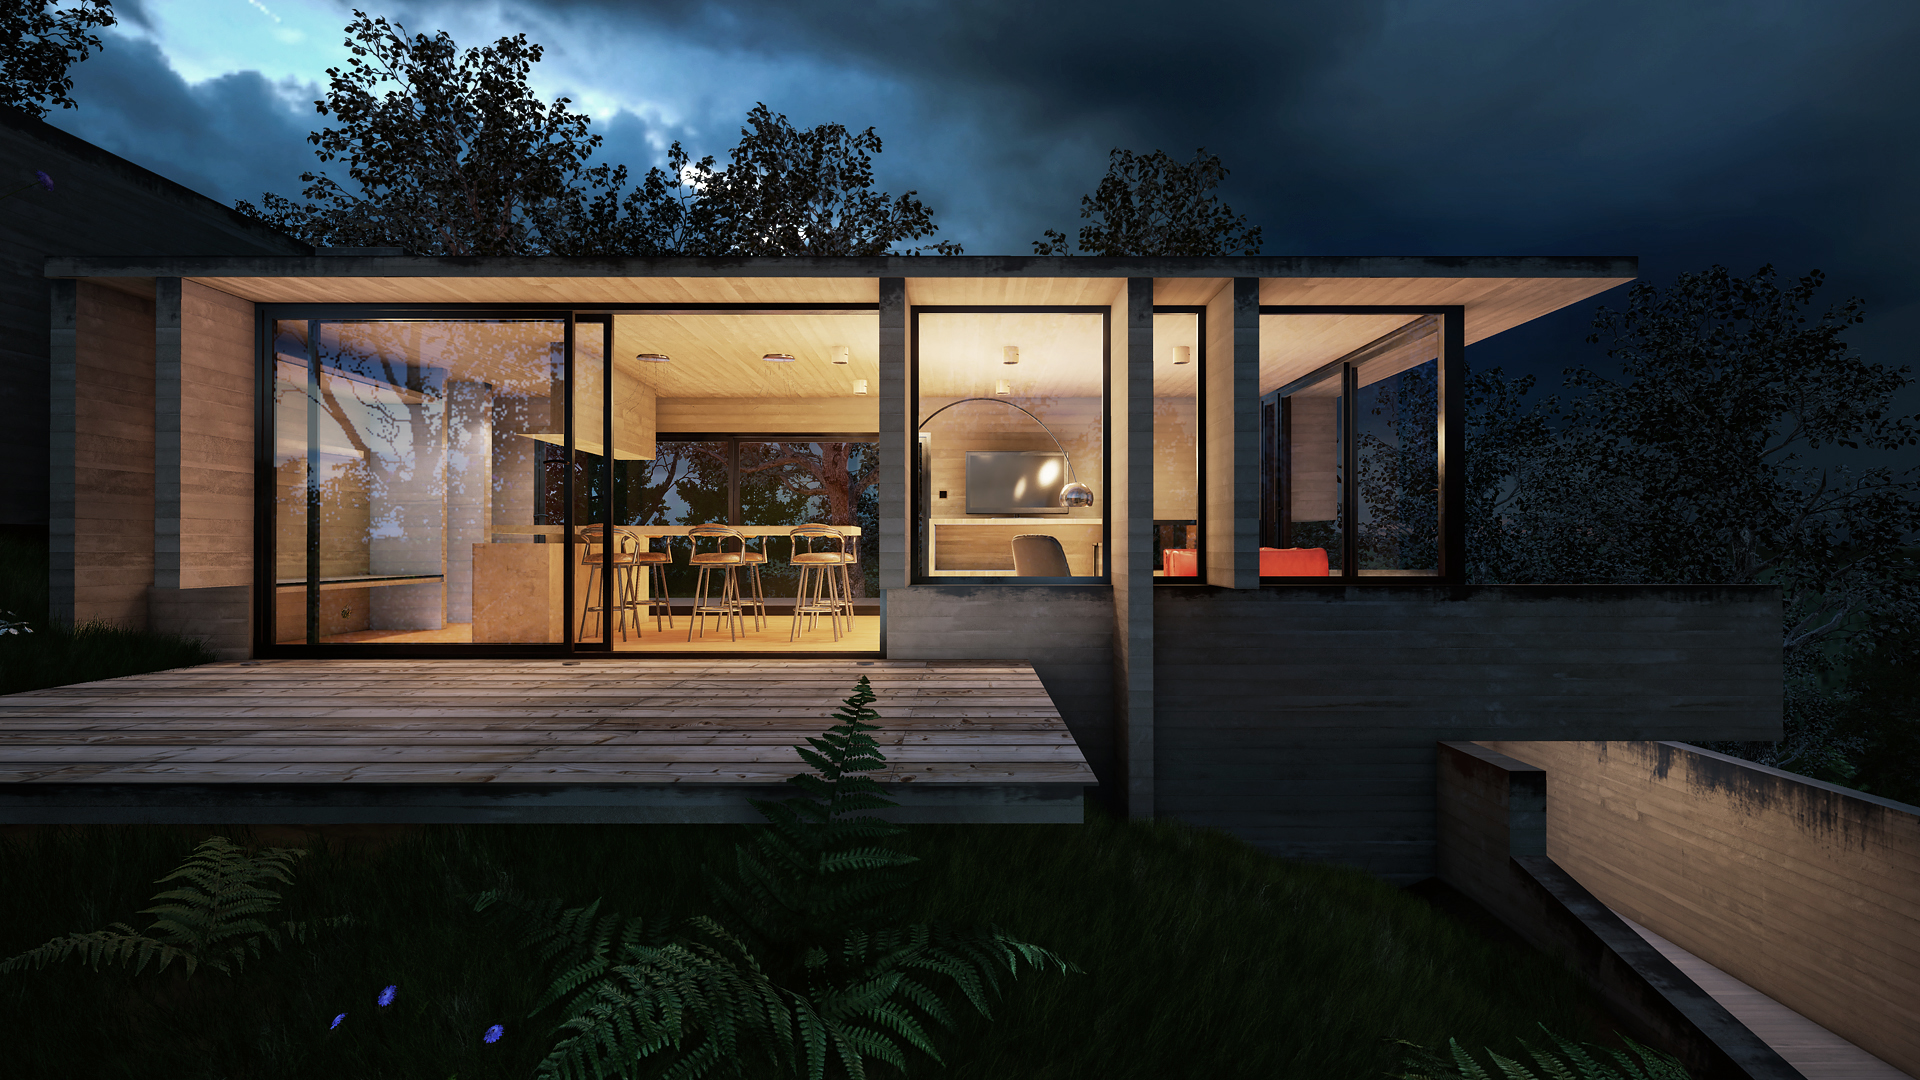 Unreal Engine Exterior Night And Day Architectural Visualization Unreal Engine Forums